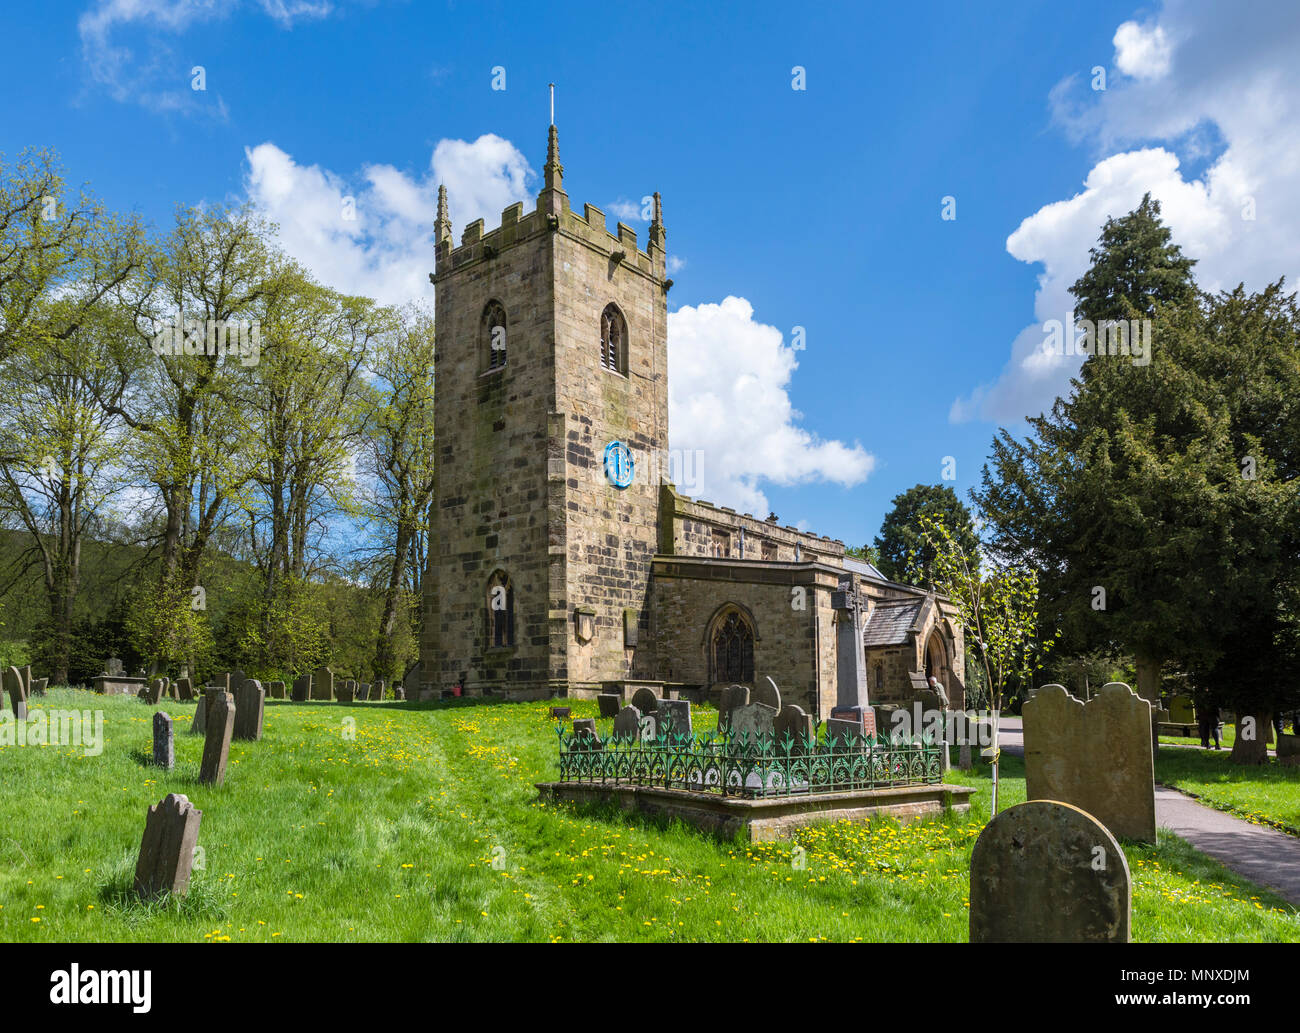 The Parish Church in Eyam, Peak District, Derbyshire, England, UK. Eyam  IS sometimes referred to as the Plague Village. - Stock Image